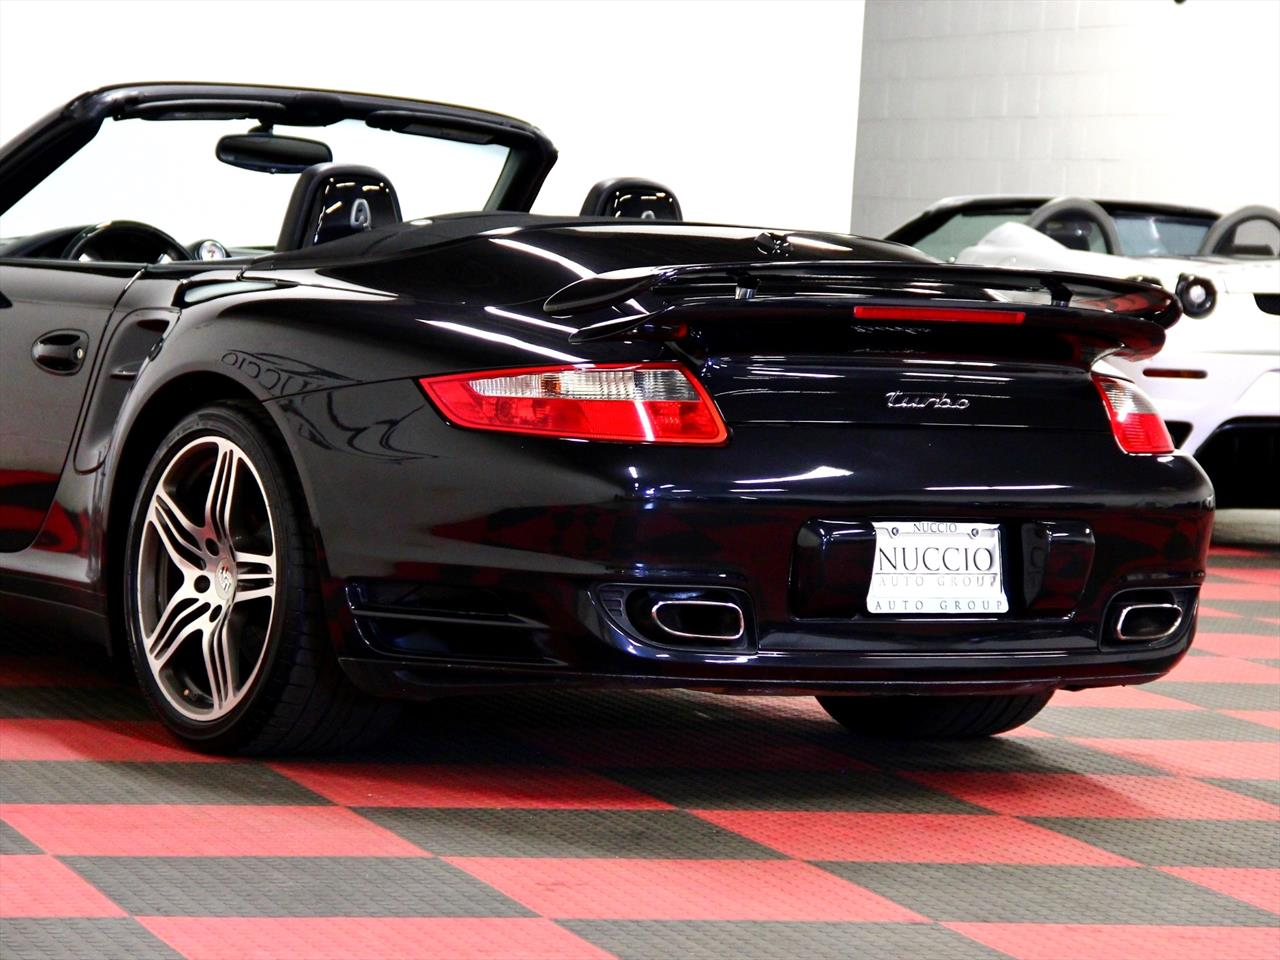 2009 porsche 911 turbo cabriolet. Black Bedroom Furniture Sets. Home Design Ideas